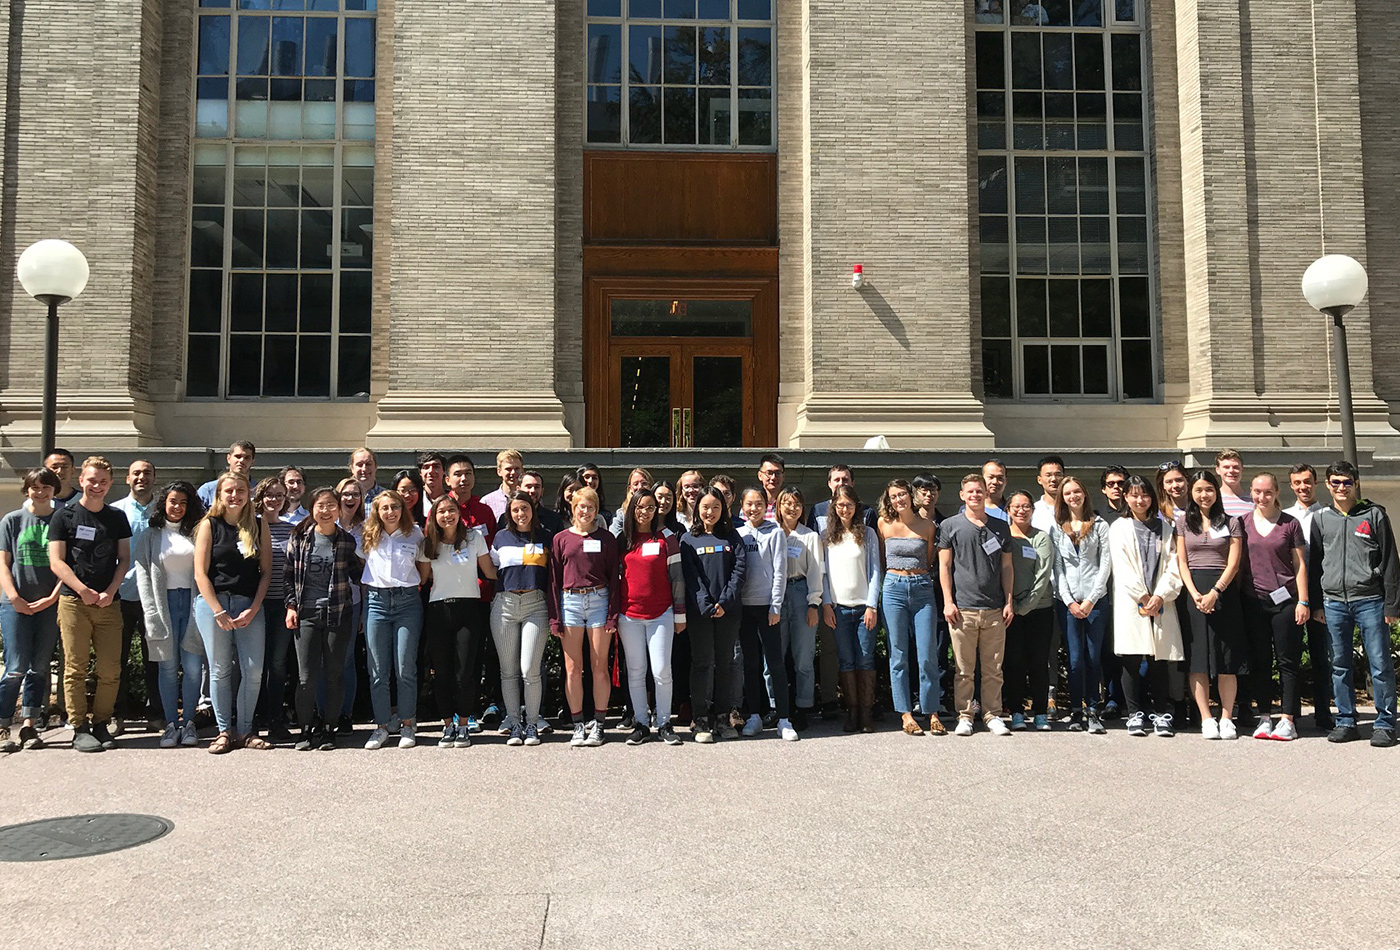 A group shot of 50 graduate students in front of an MIT building.